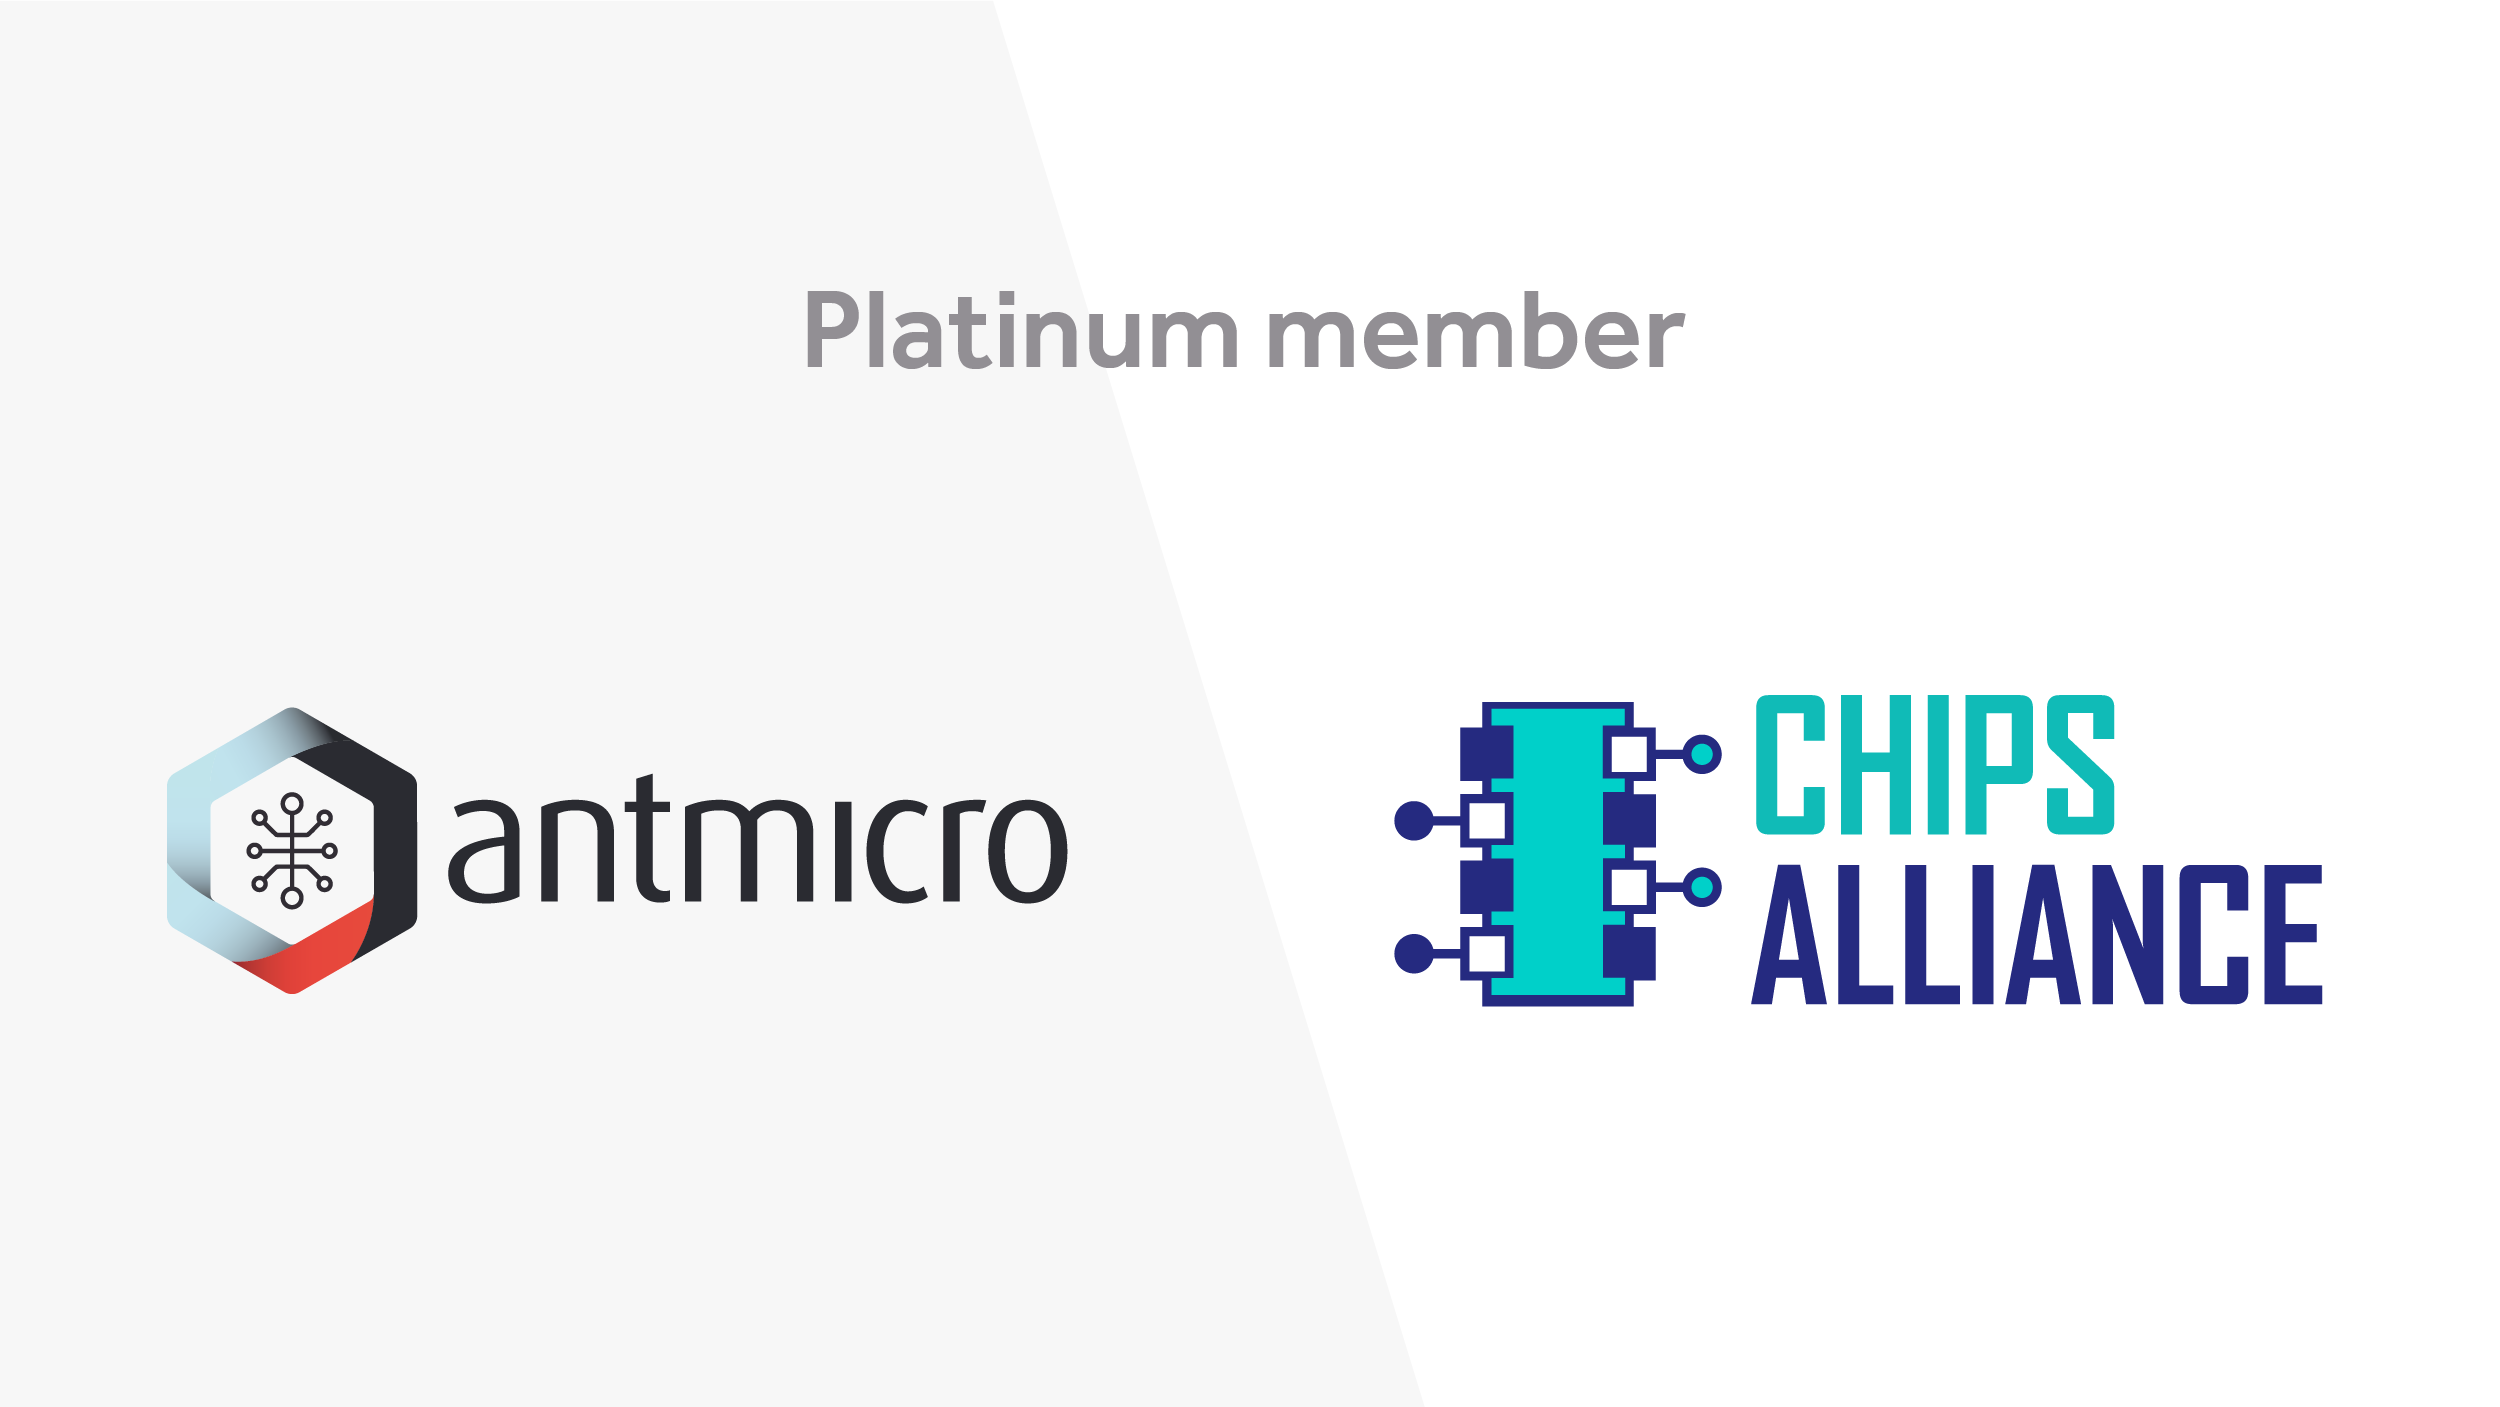 Antmicro and CHIPS Alliance logo